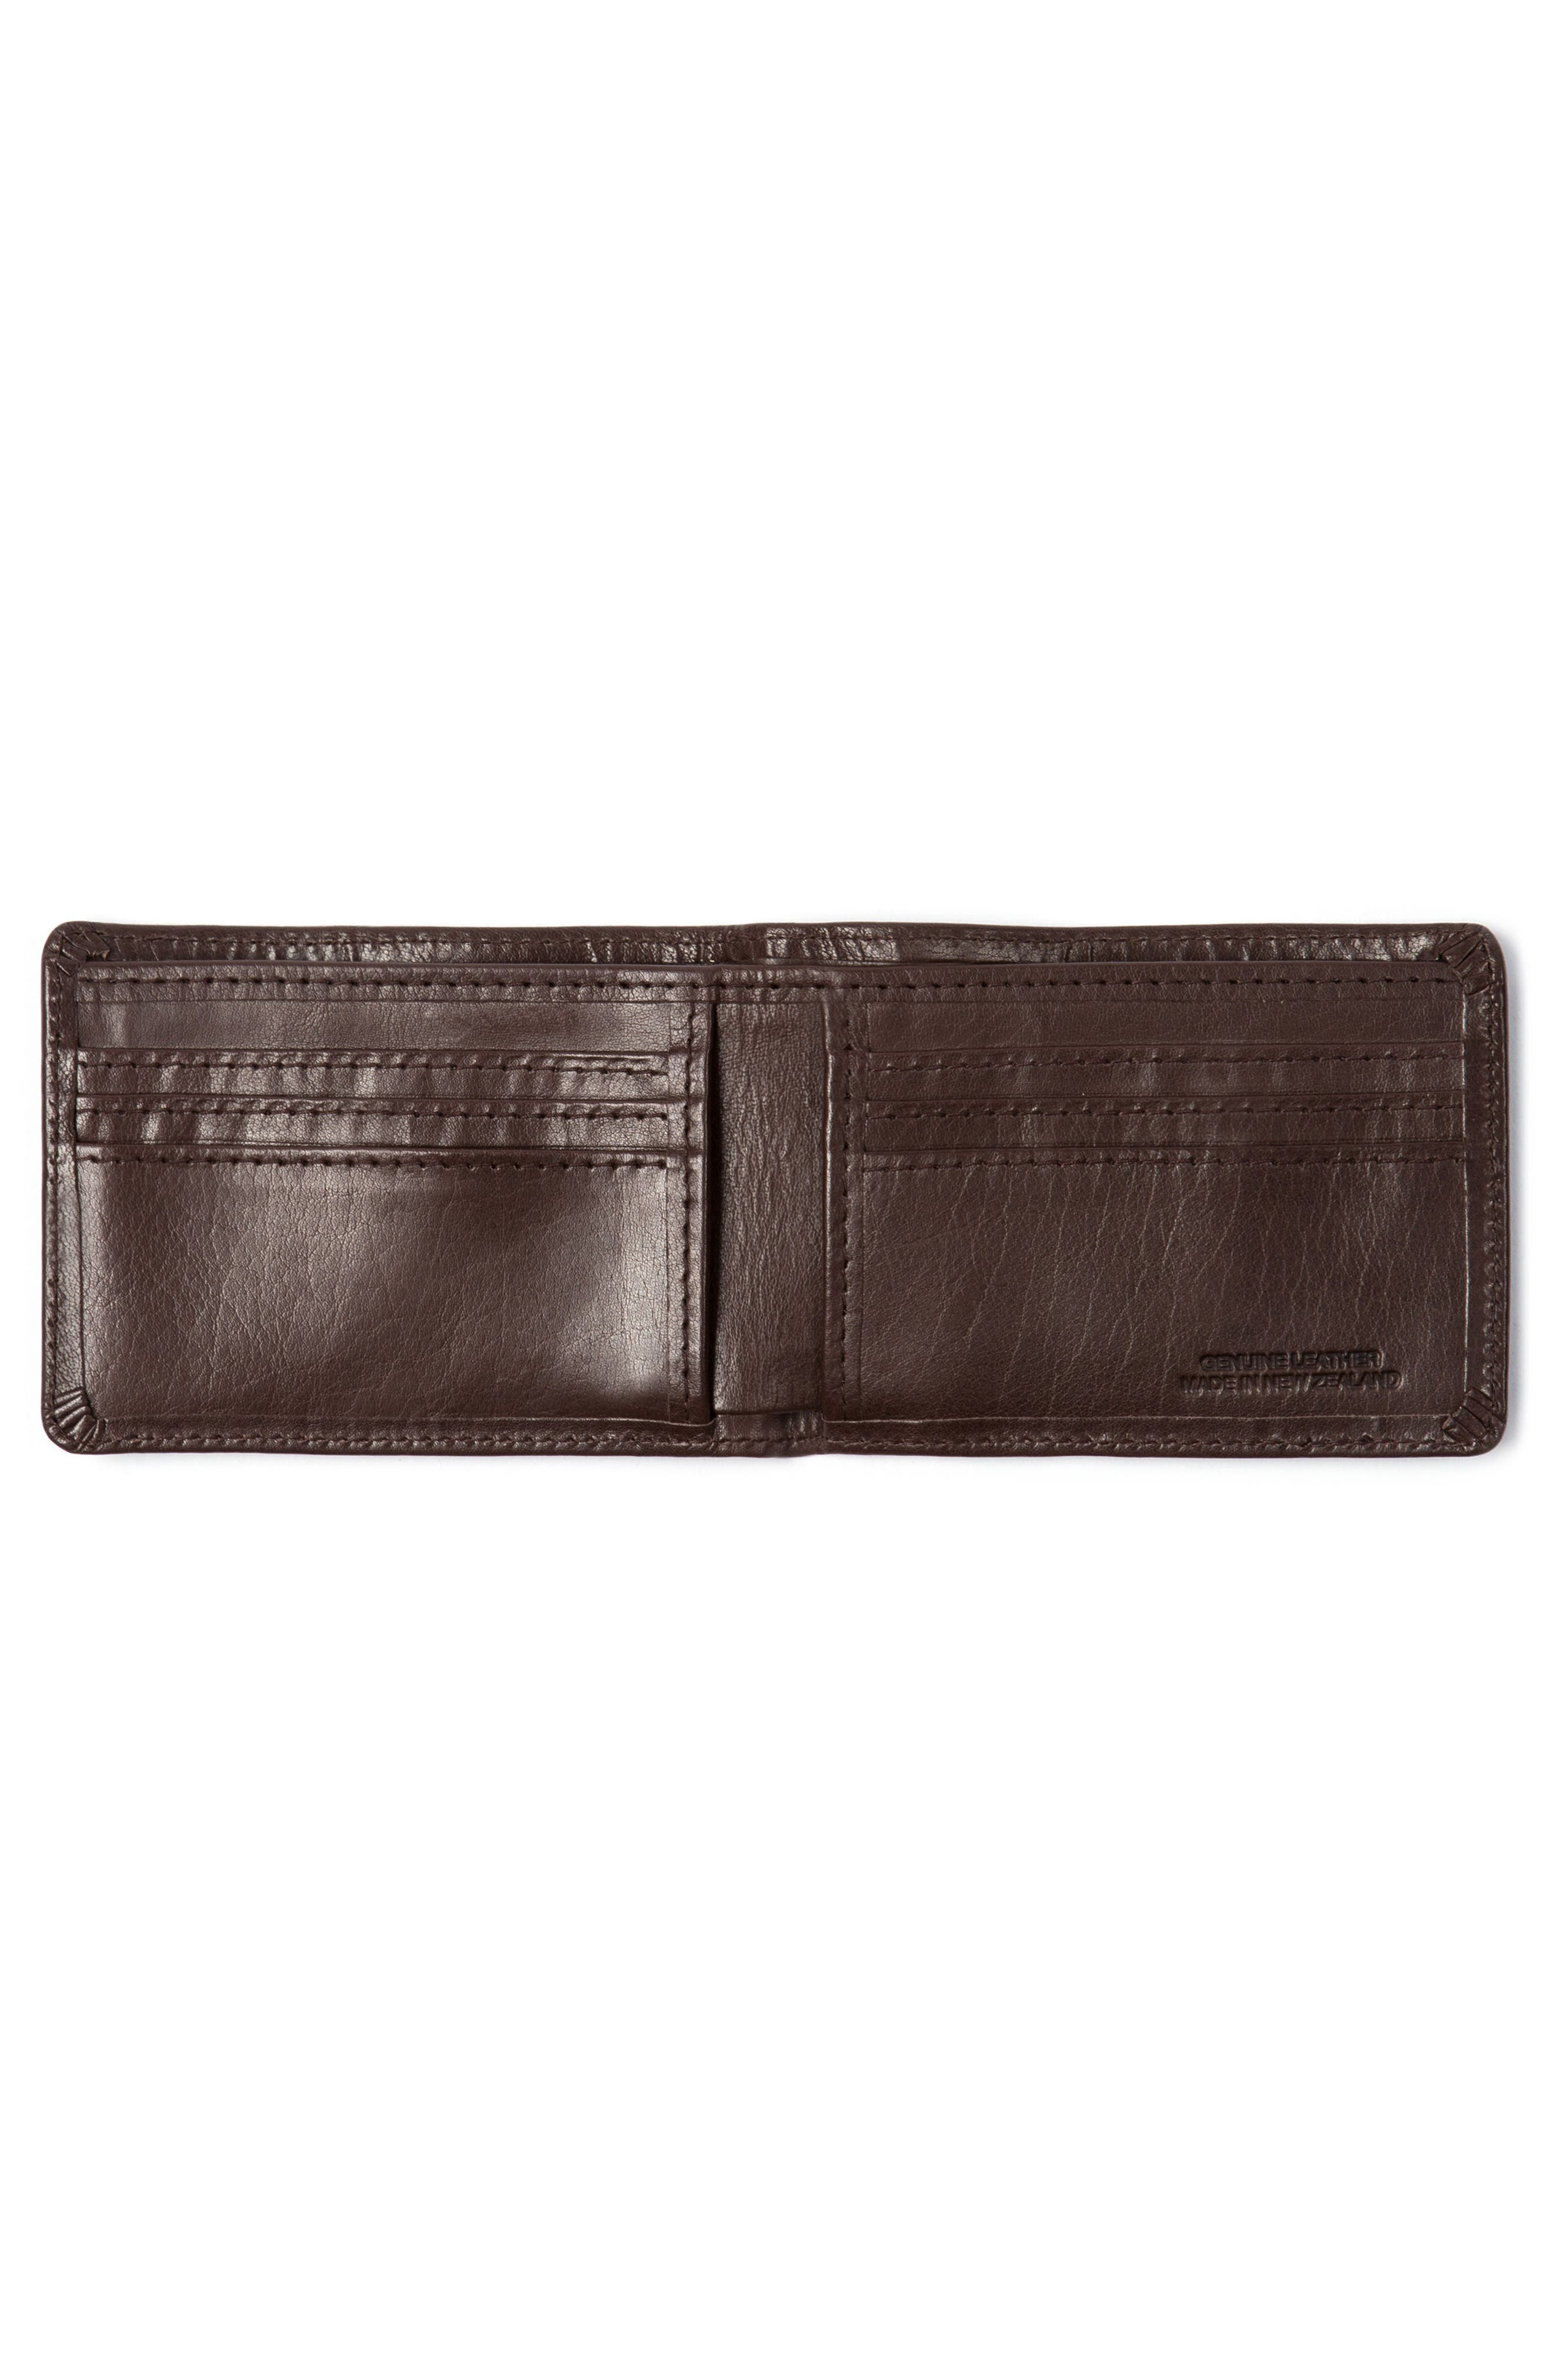 Lamont Wallet,                             Alternate thumbnail 2, color,                             MUD